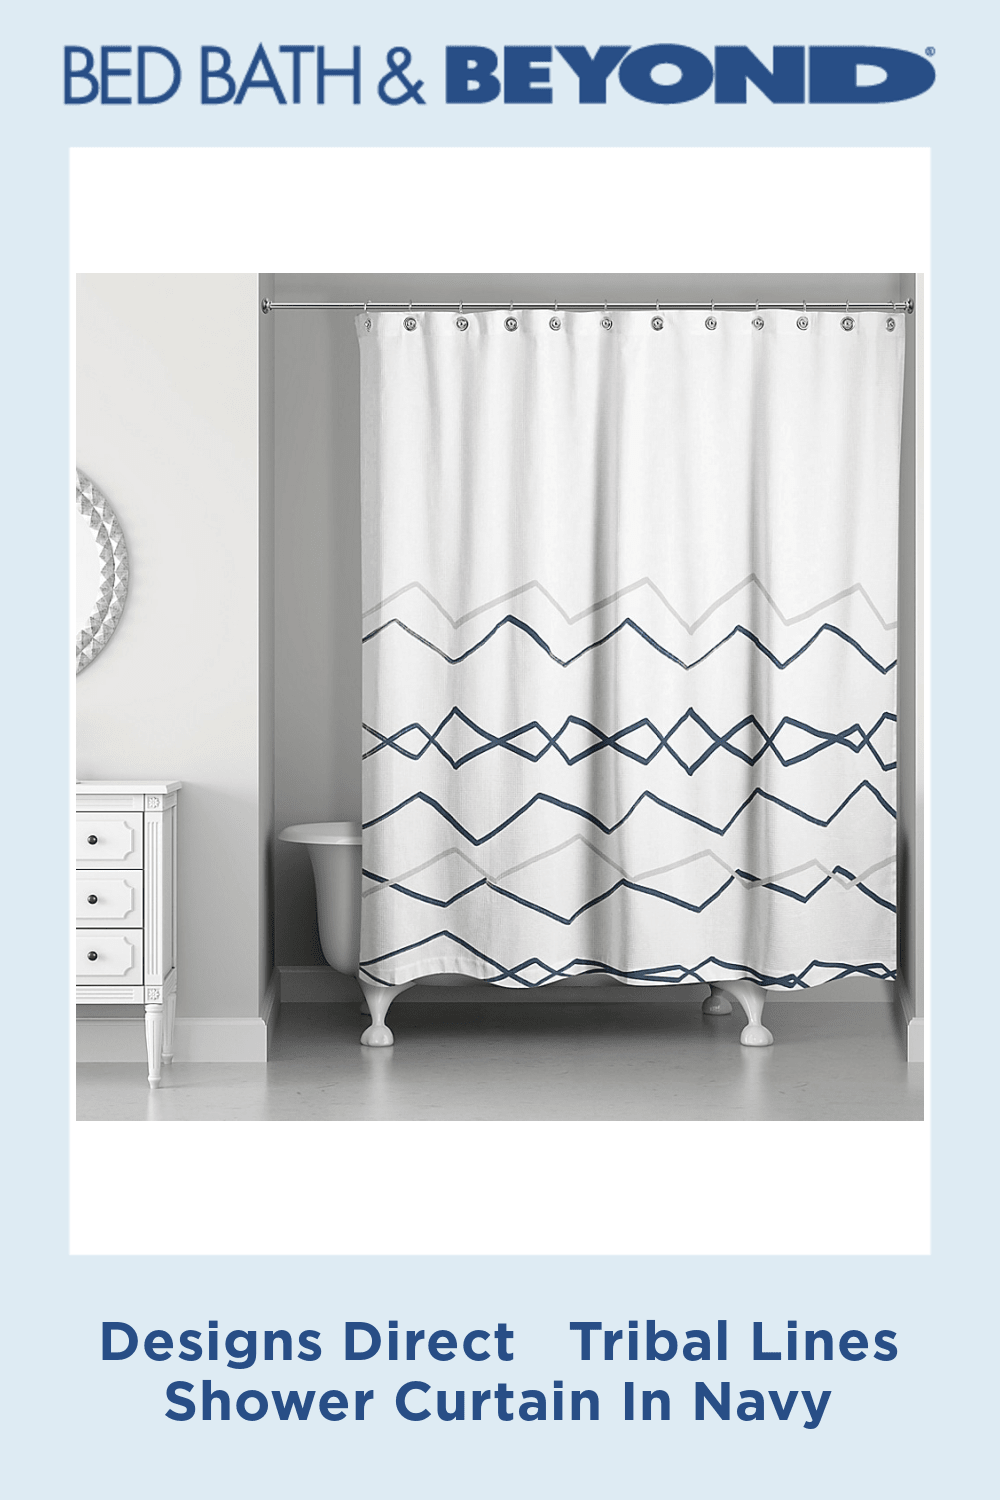 Designs Direct Tribal Lines Shower Curtain In Navy